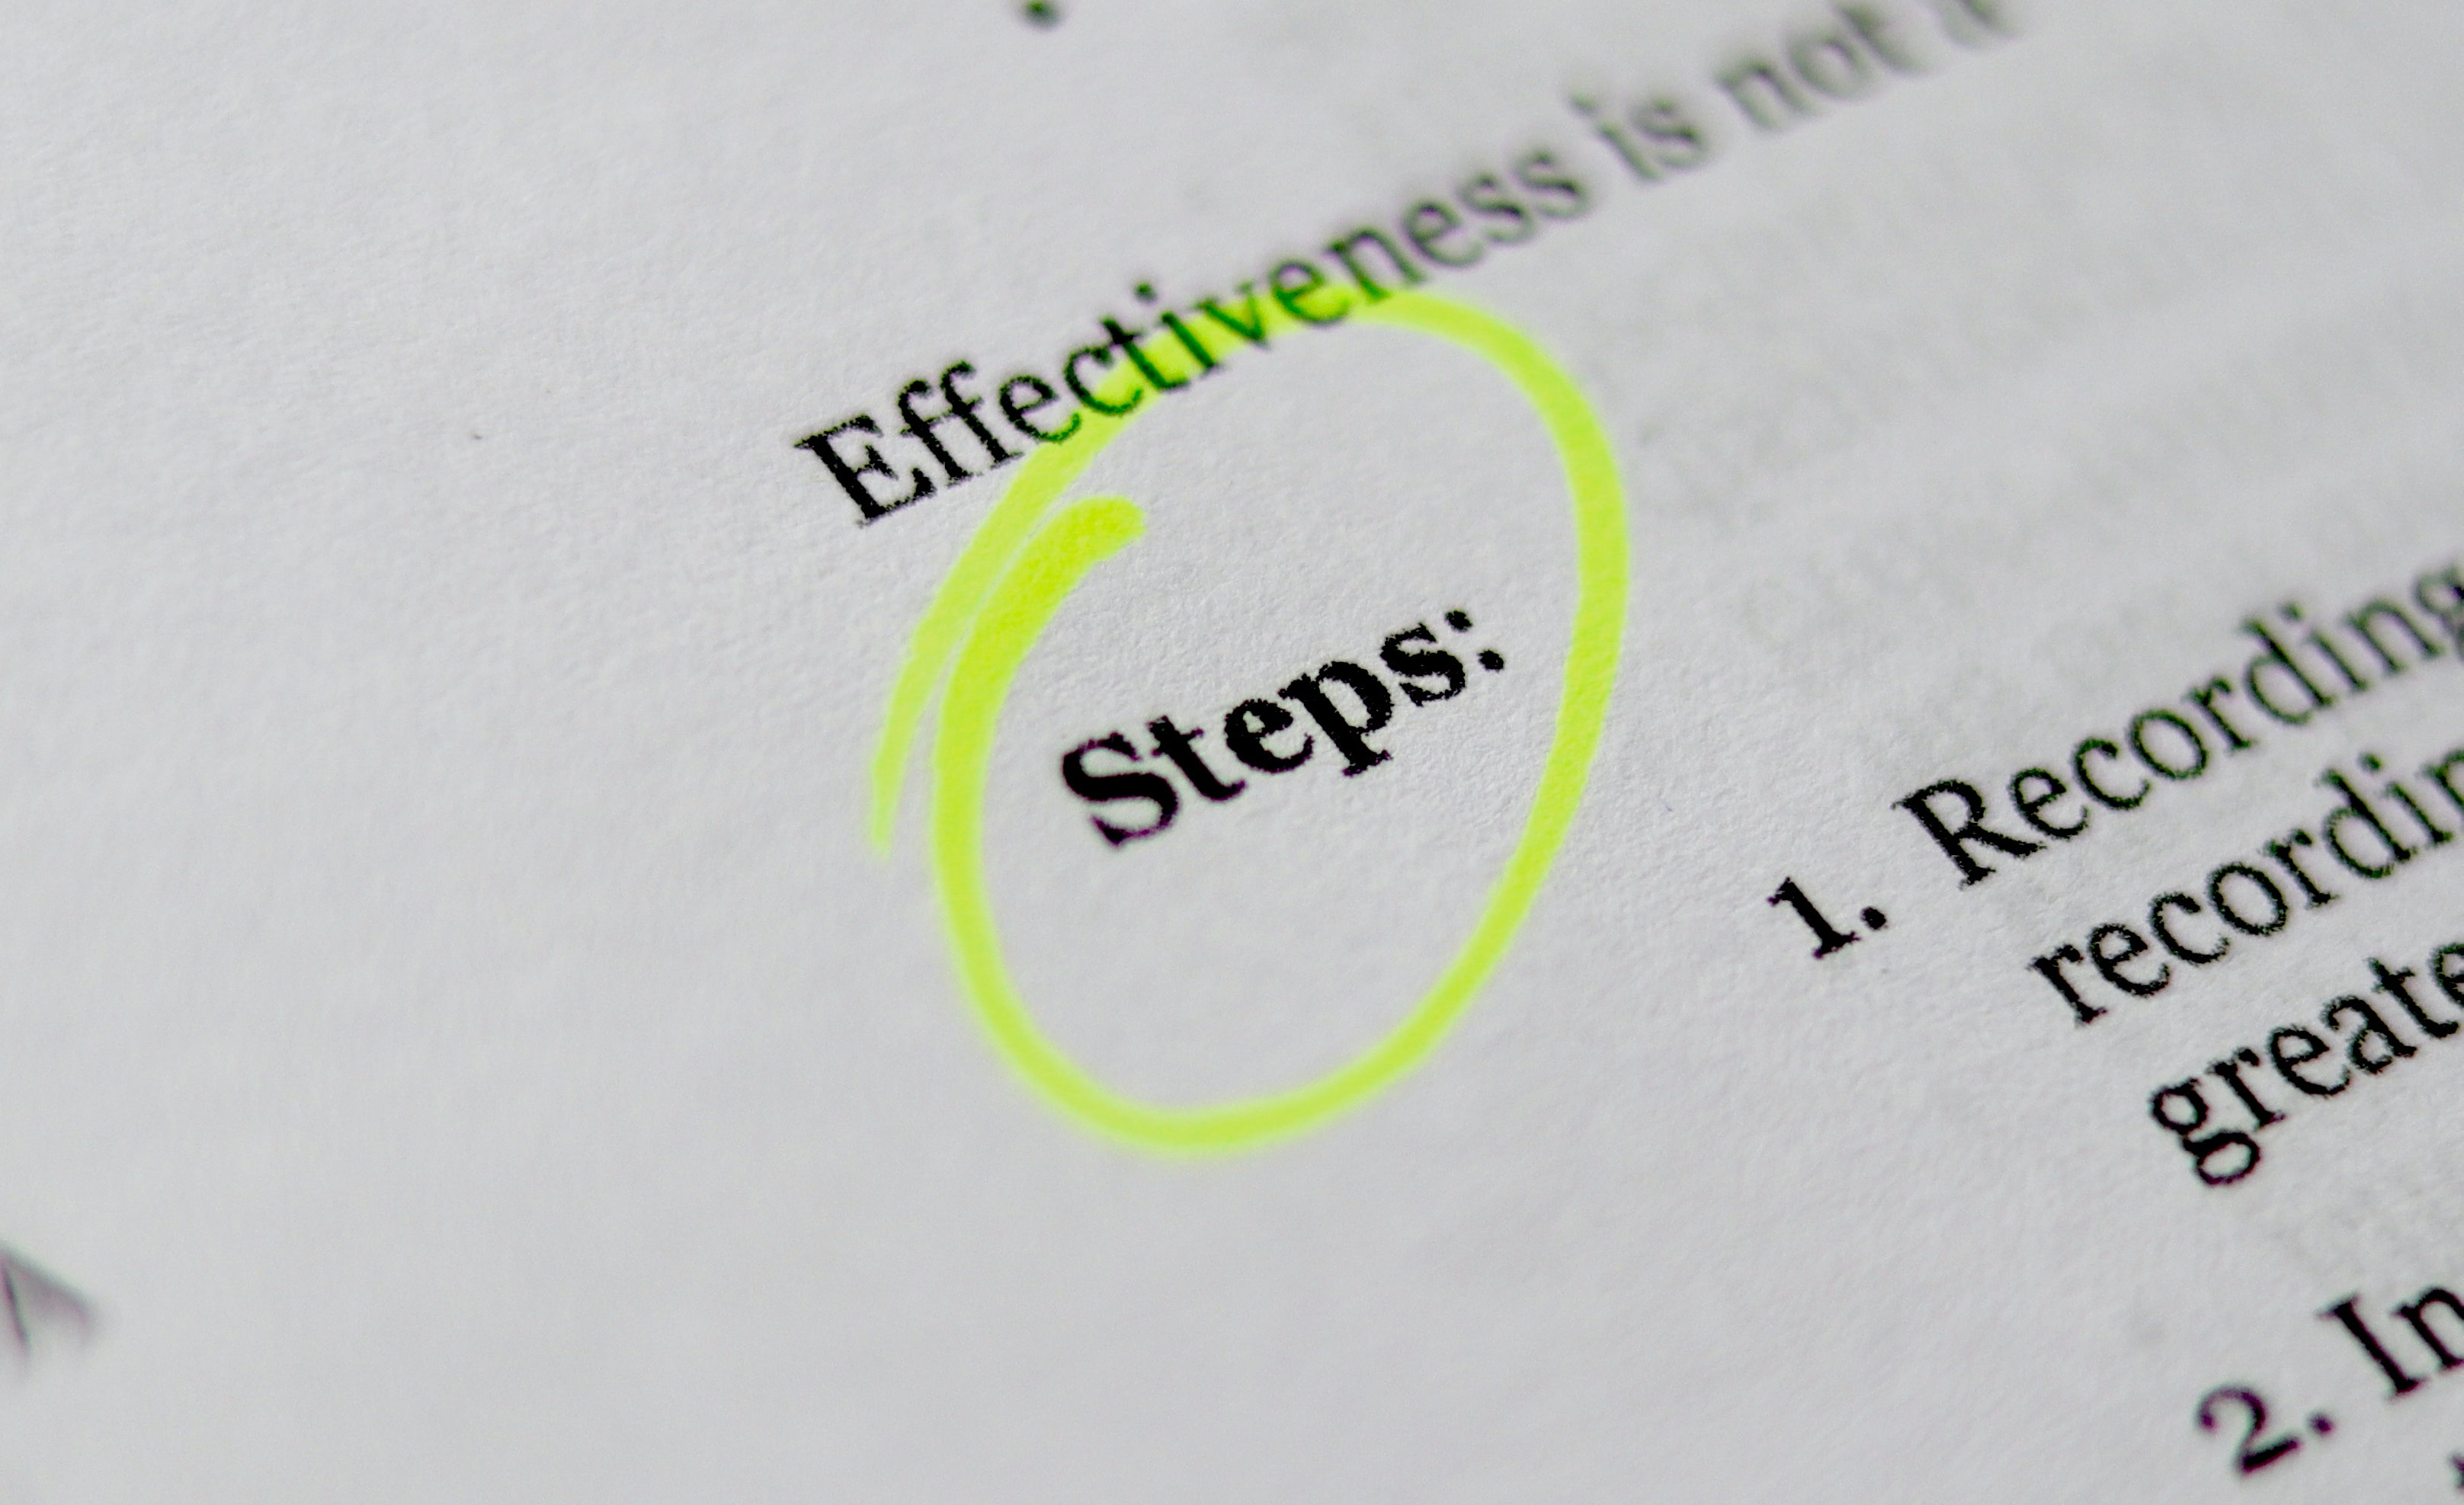 A paper with the work 'Steps' circled with a highlighter